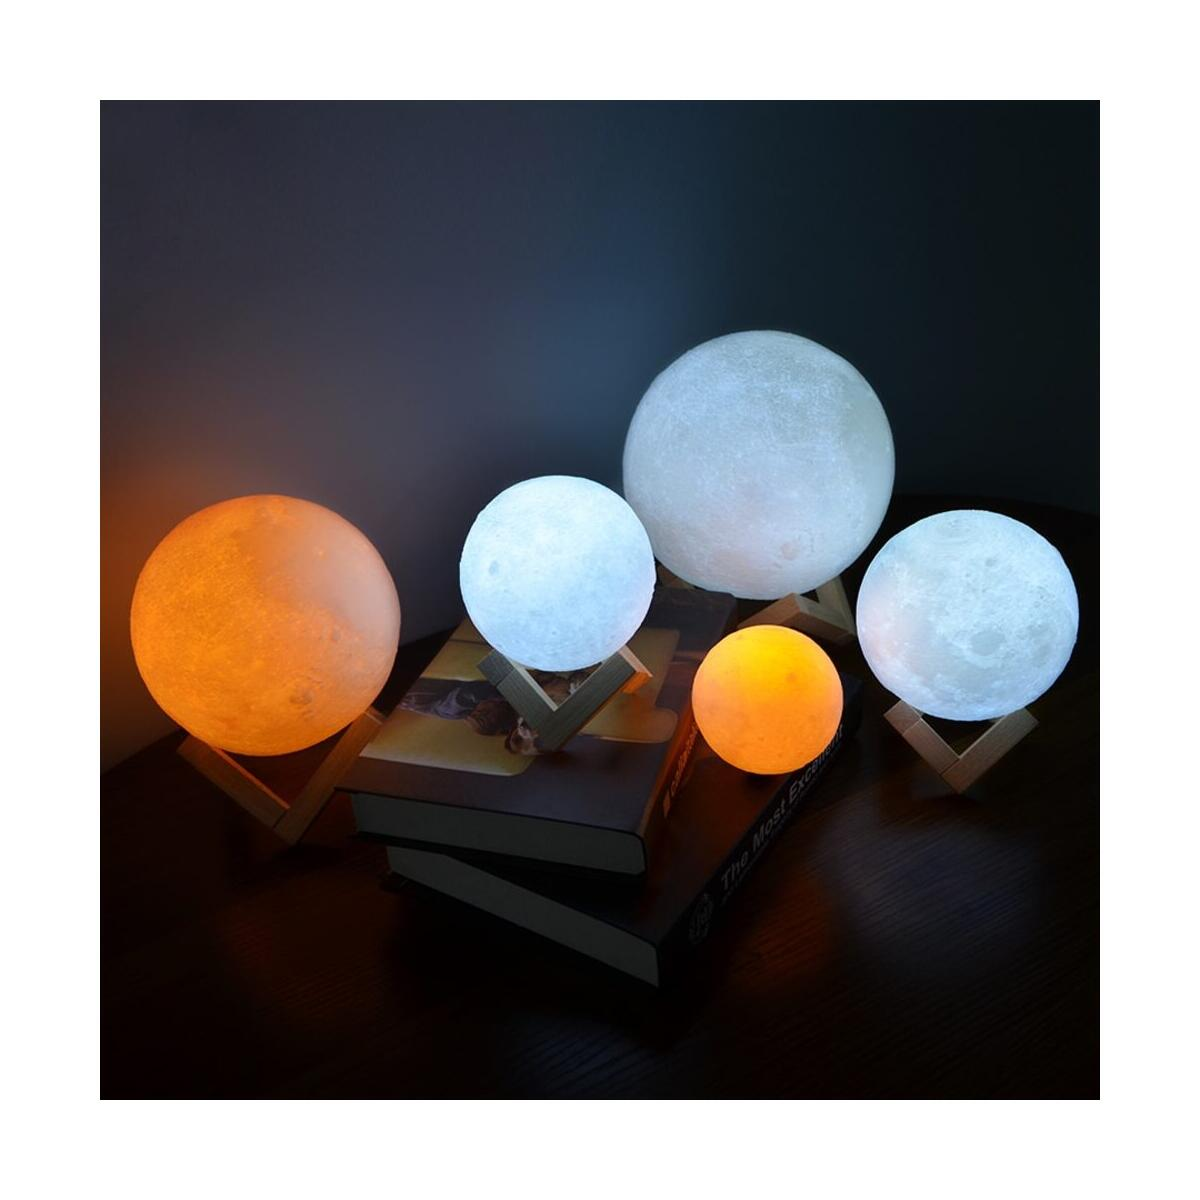 Lighting Night Light LED 3D Printing Moon Lamp, Warm and Cool White Dimmable Touch Control Brightness